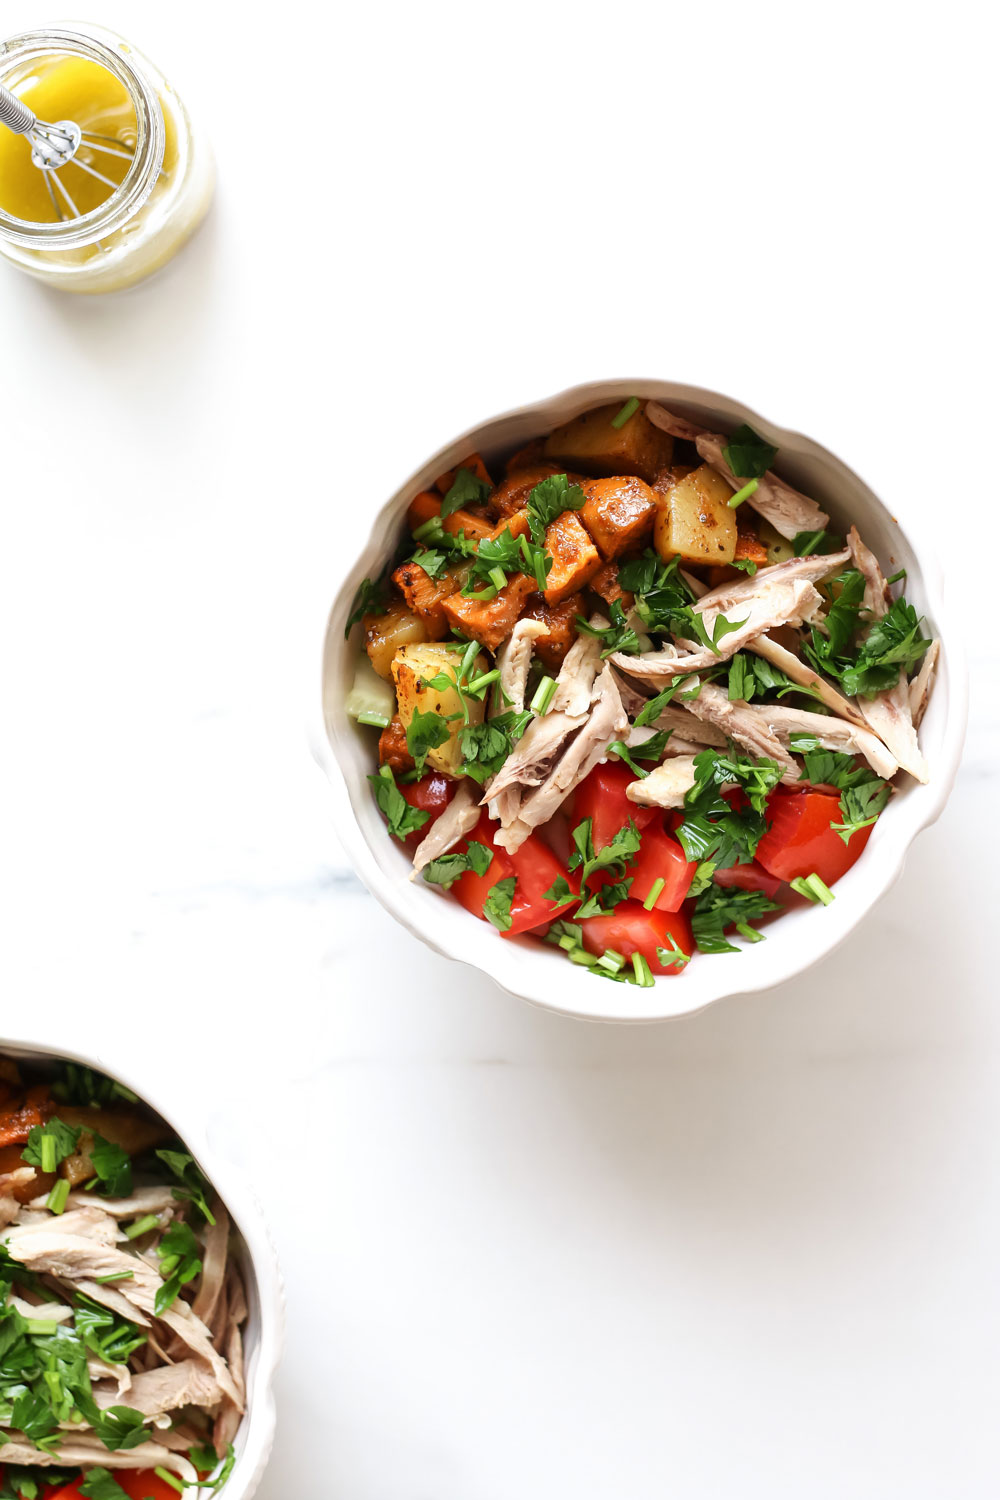 Cajun-Spiced Potato and Chicken Salad Recipe: Quintessential veggie base with a lean protein, a flavorful topping, and a classic dressing. https://www.spotebi.com/recipes/cajun-spiced-potato-chicken-salad/